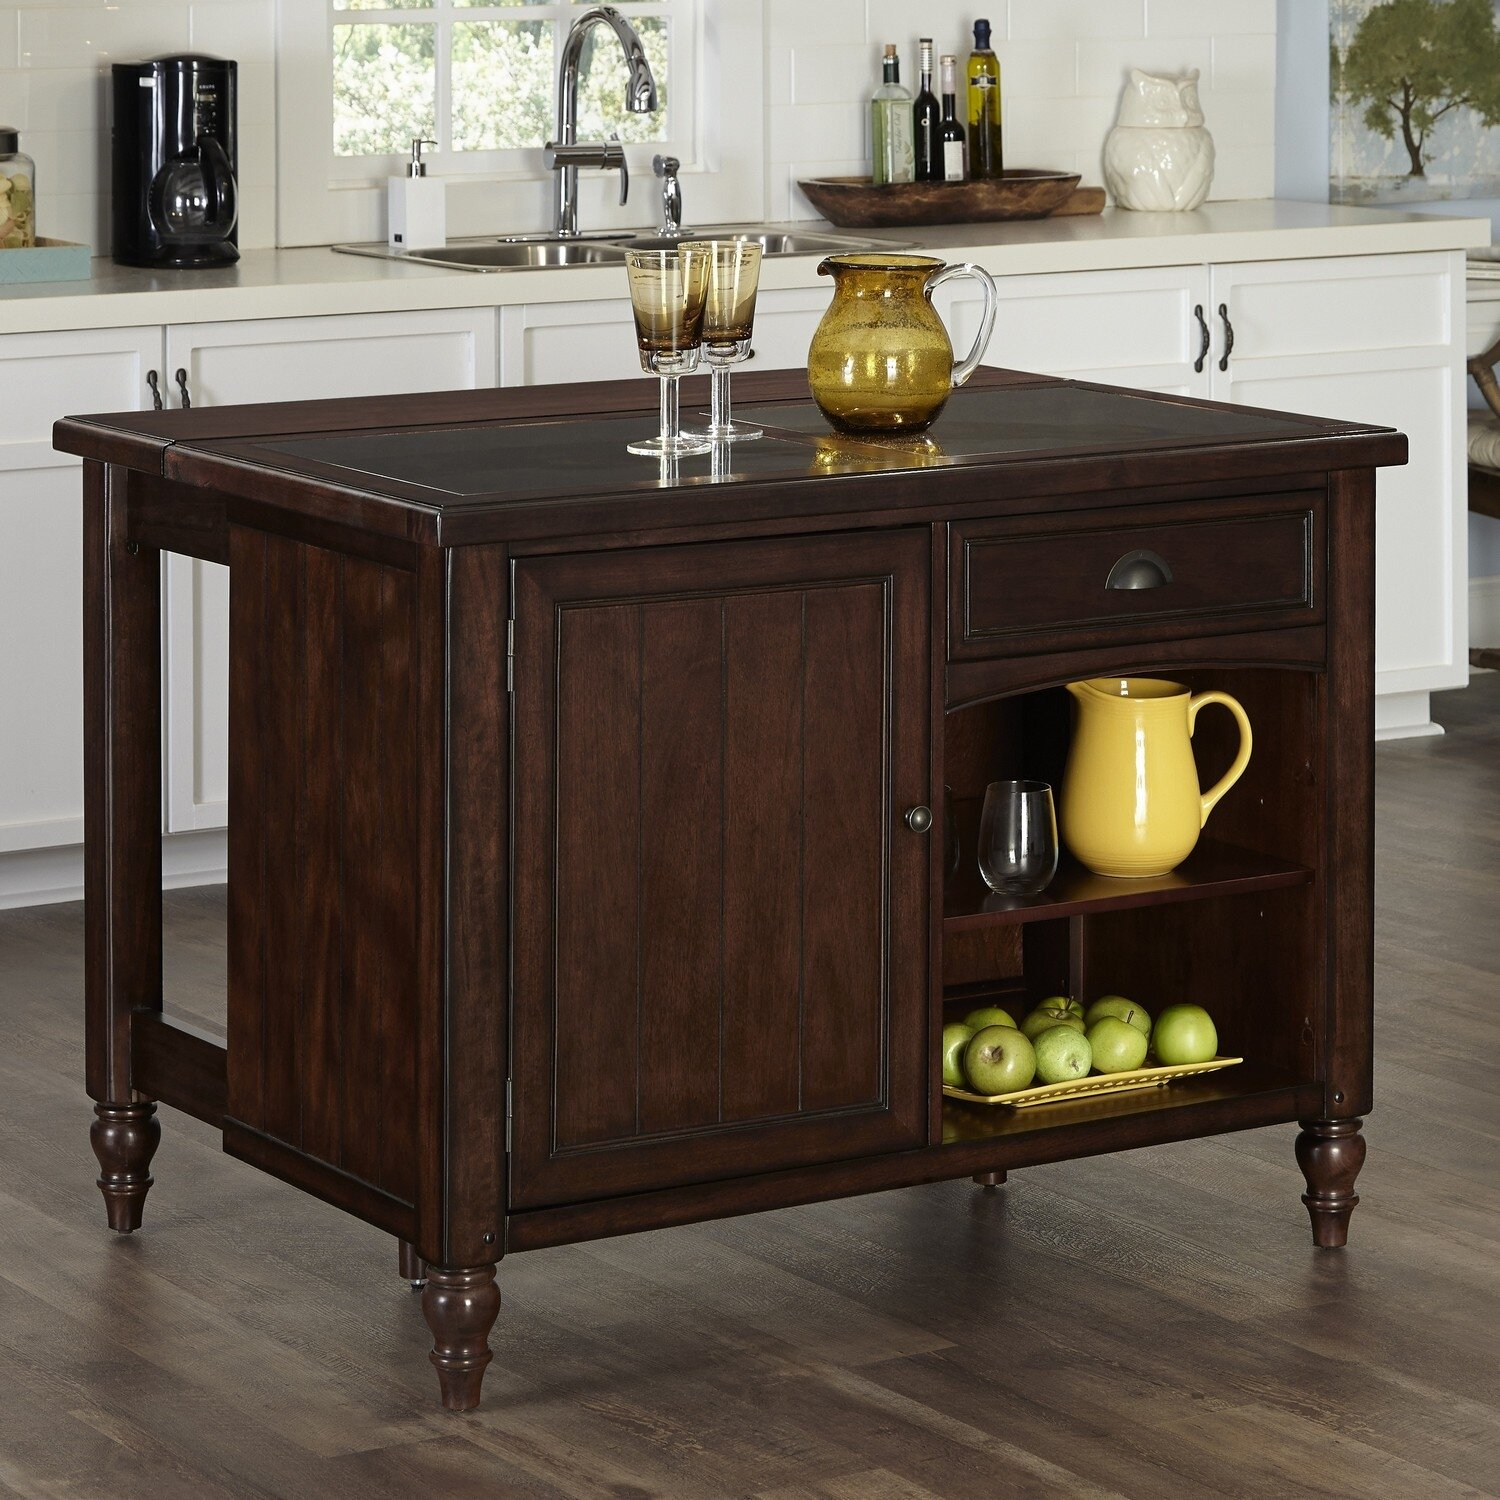 Country Comfort Kitchen Island By Home Styles